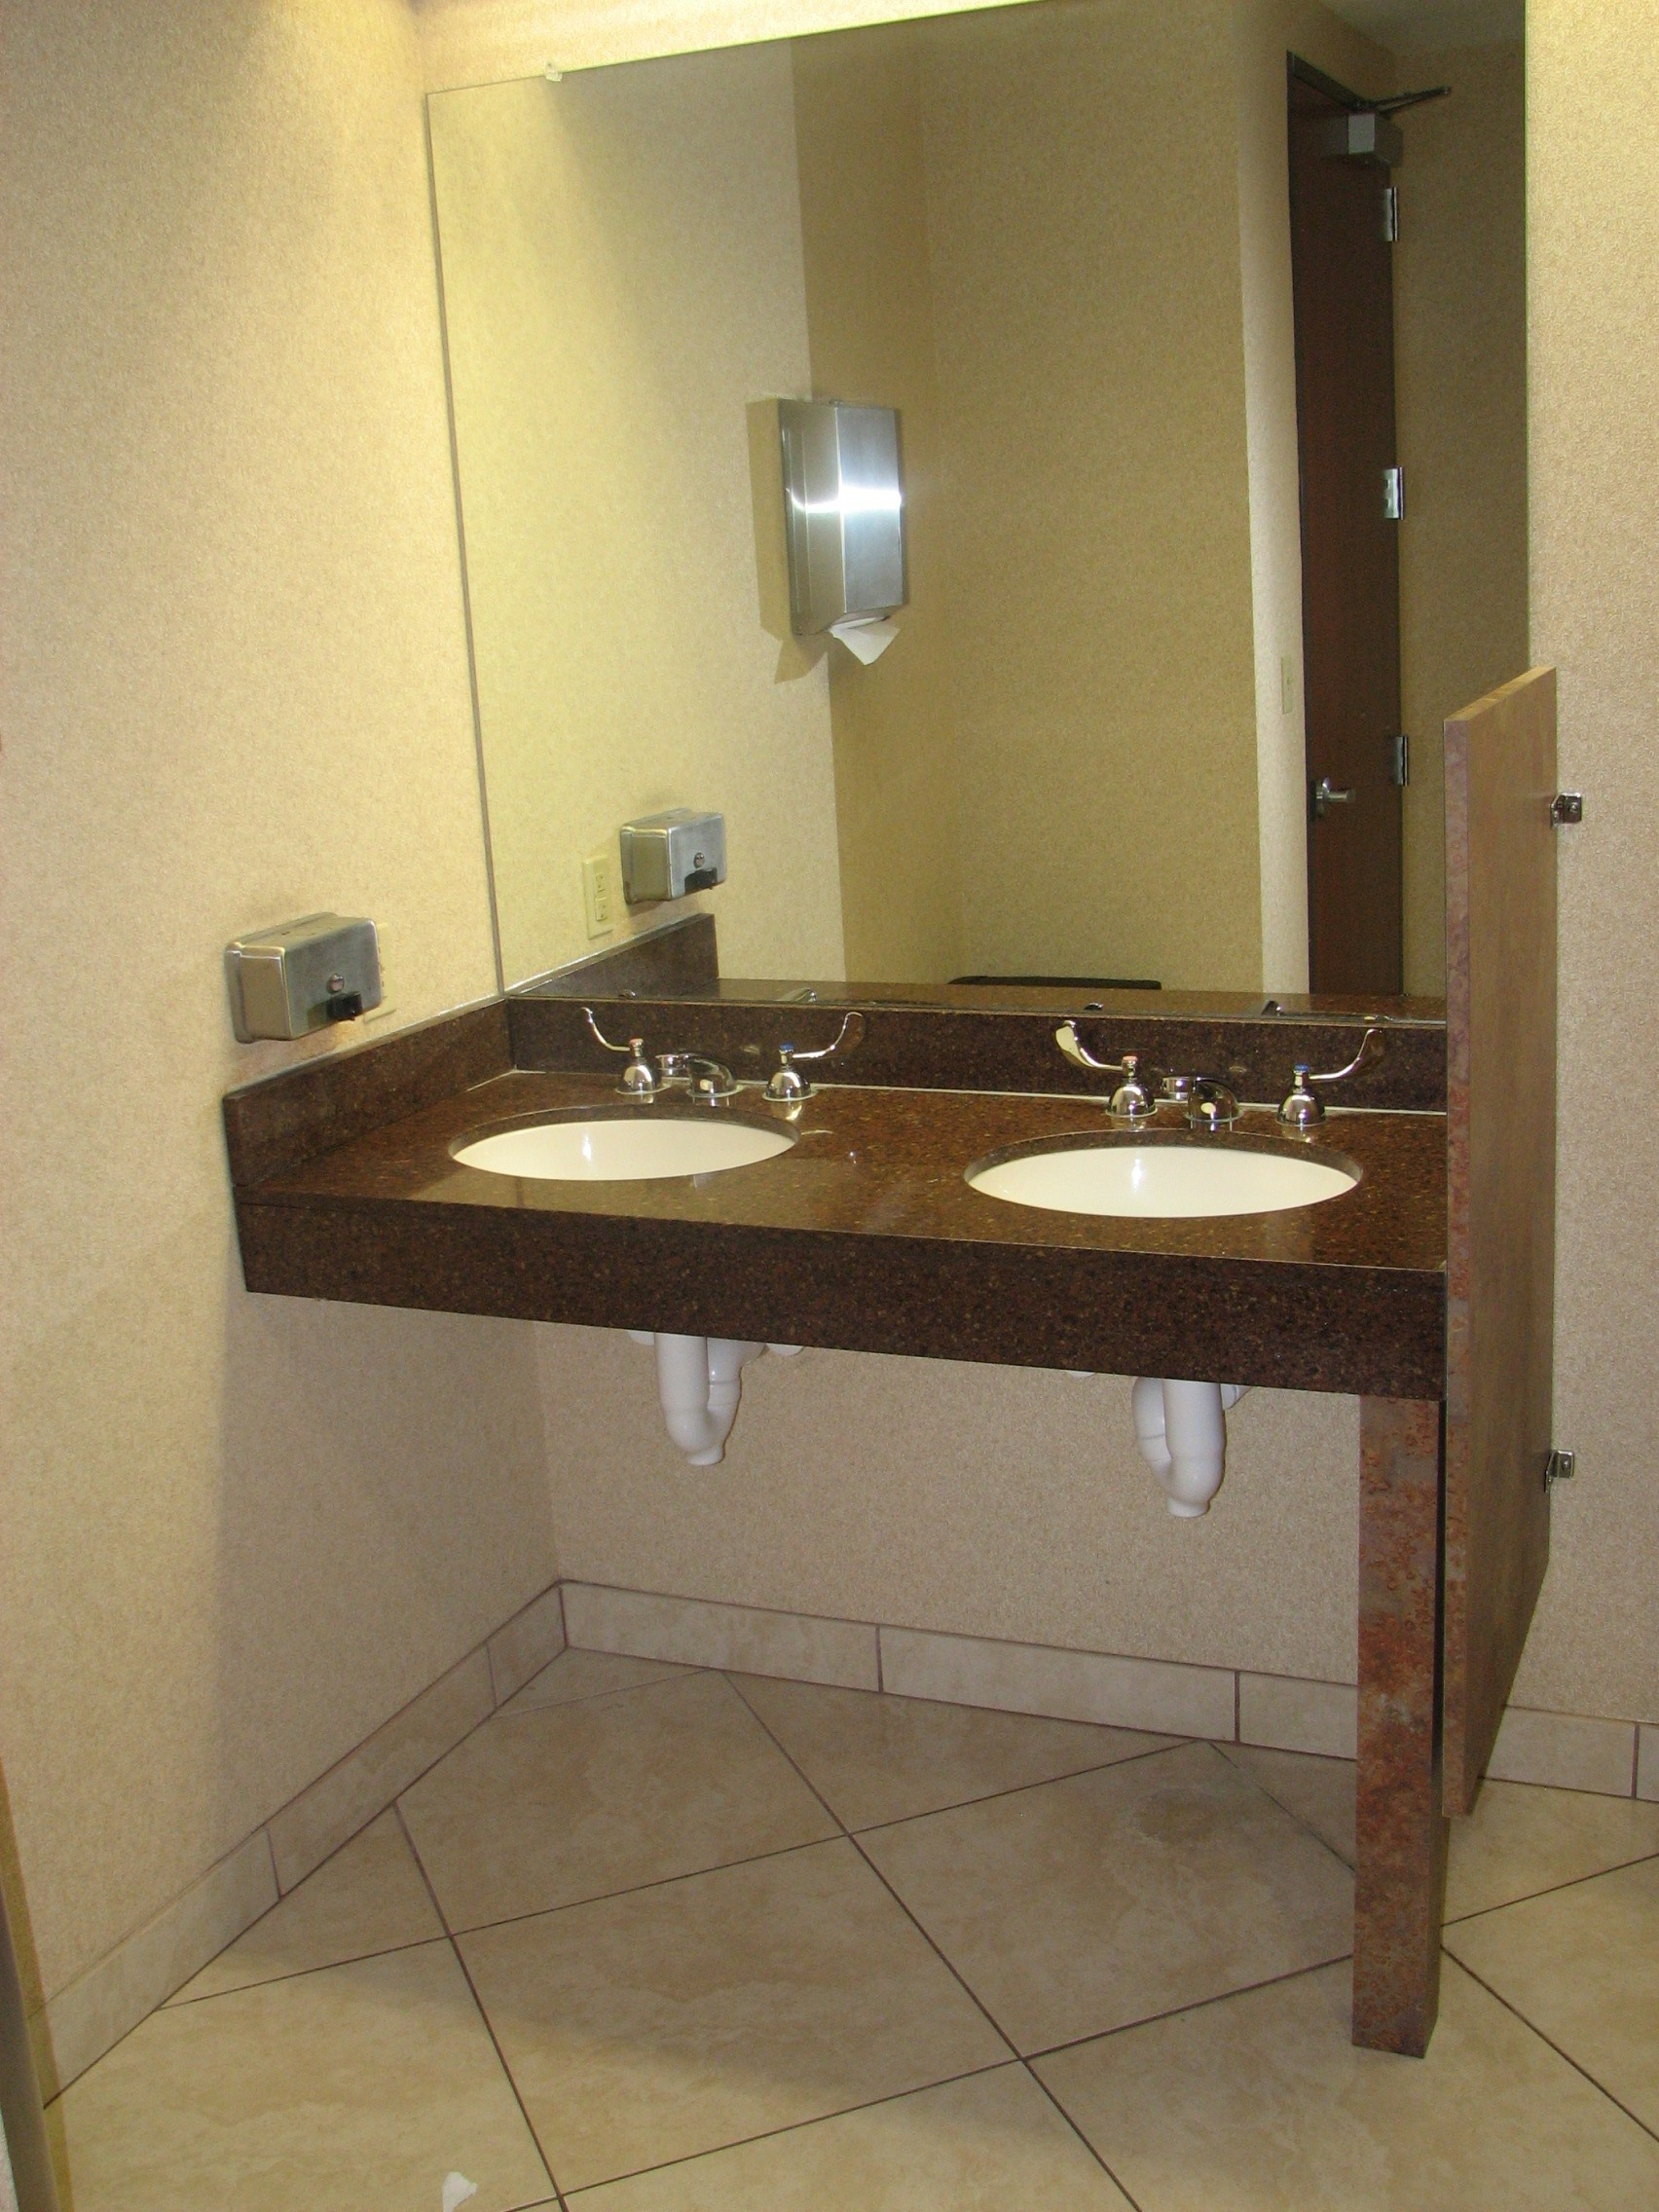 Bathroom cabinets austin - Granite Vanity Top With Pipe Wrap Protection